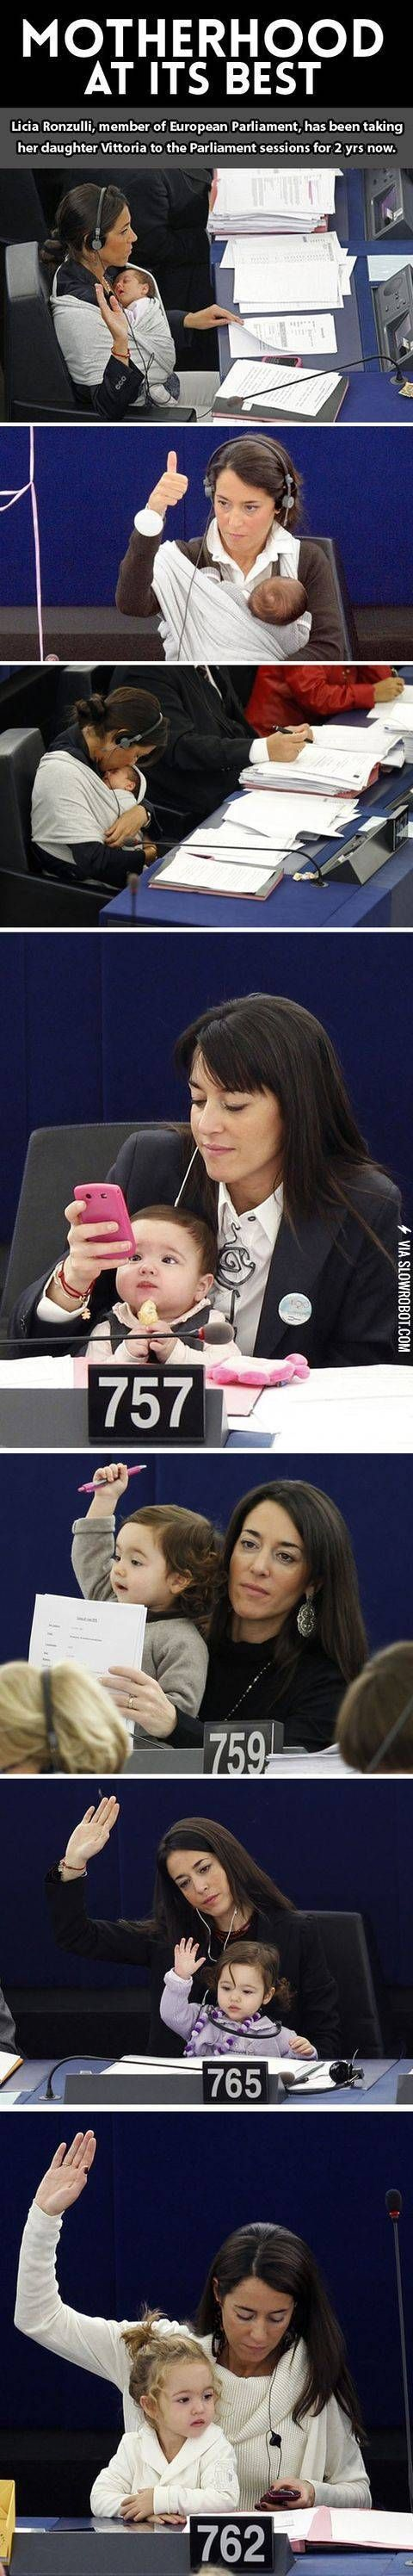 mother level: > 9,000